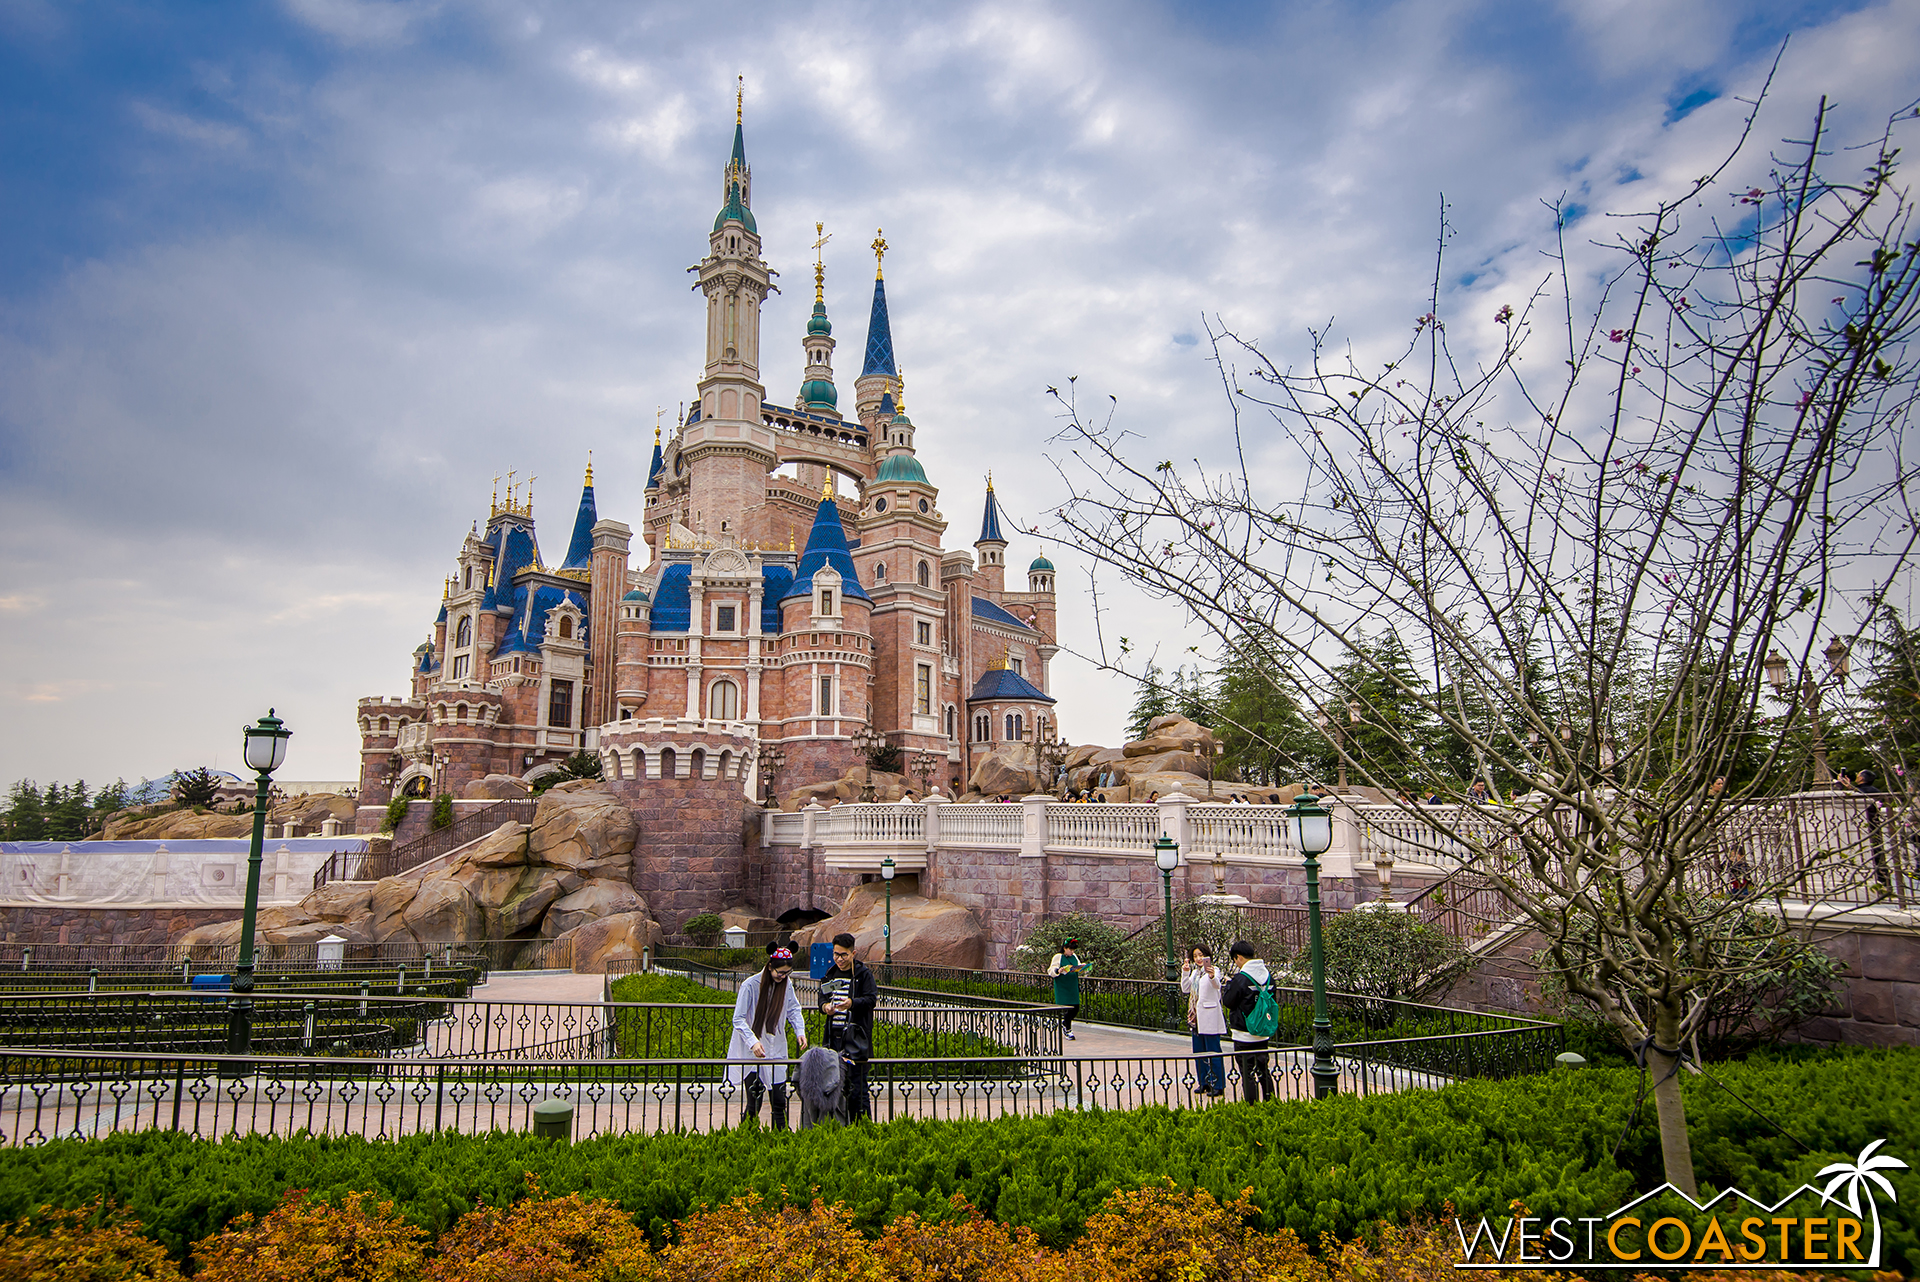 The Enchanted Storybook Castle.